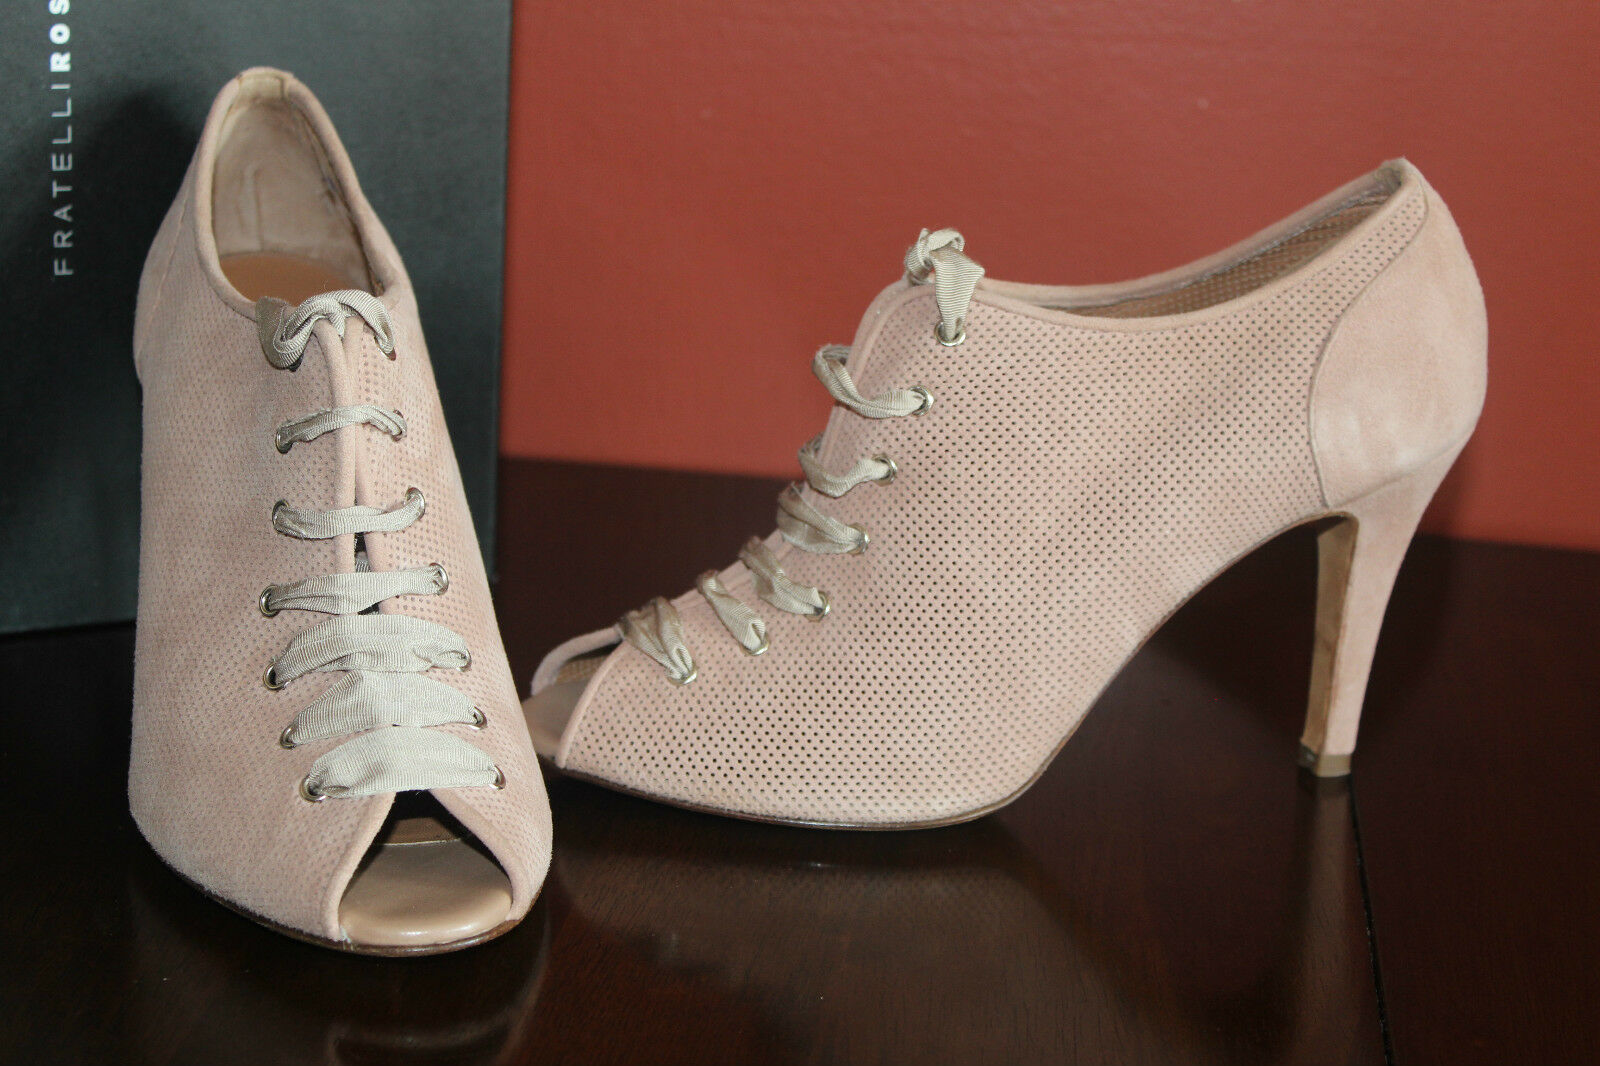 FRATELLI ROSSETTI 63623  TAILORED OXFORDS PALE PINK SUEDE UPPER  8.5us  599